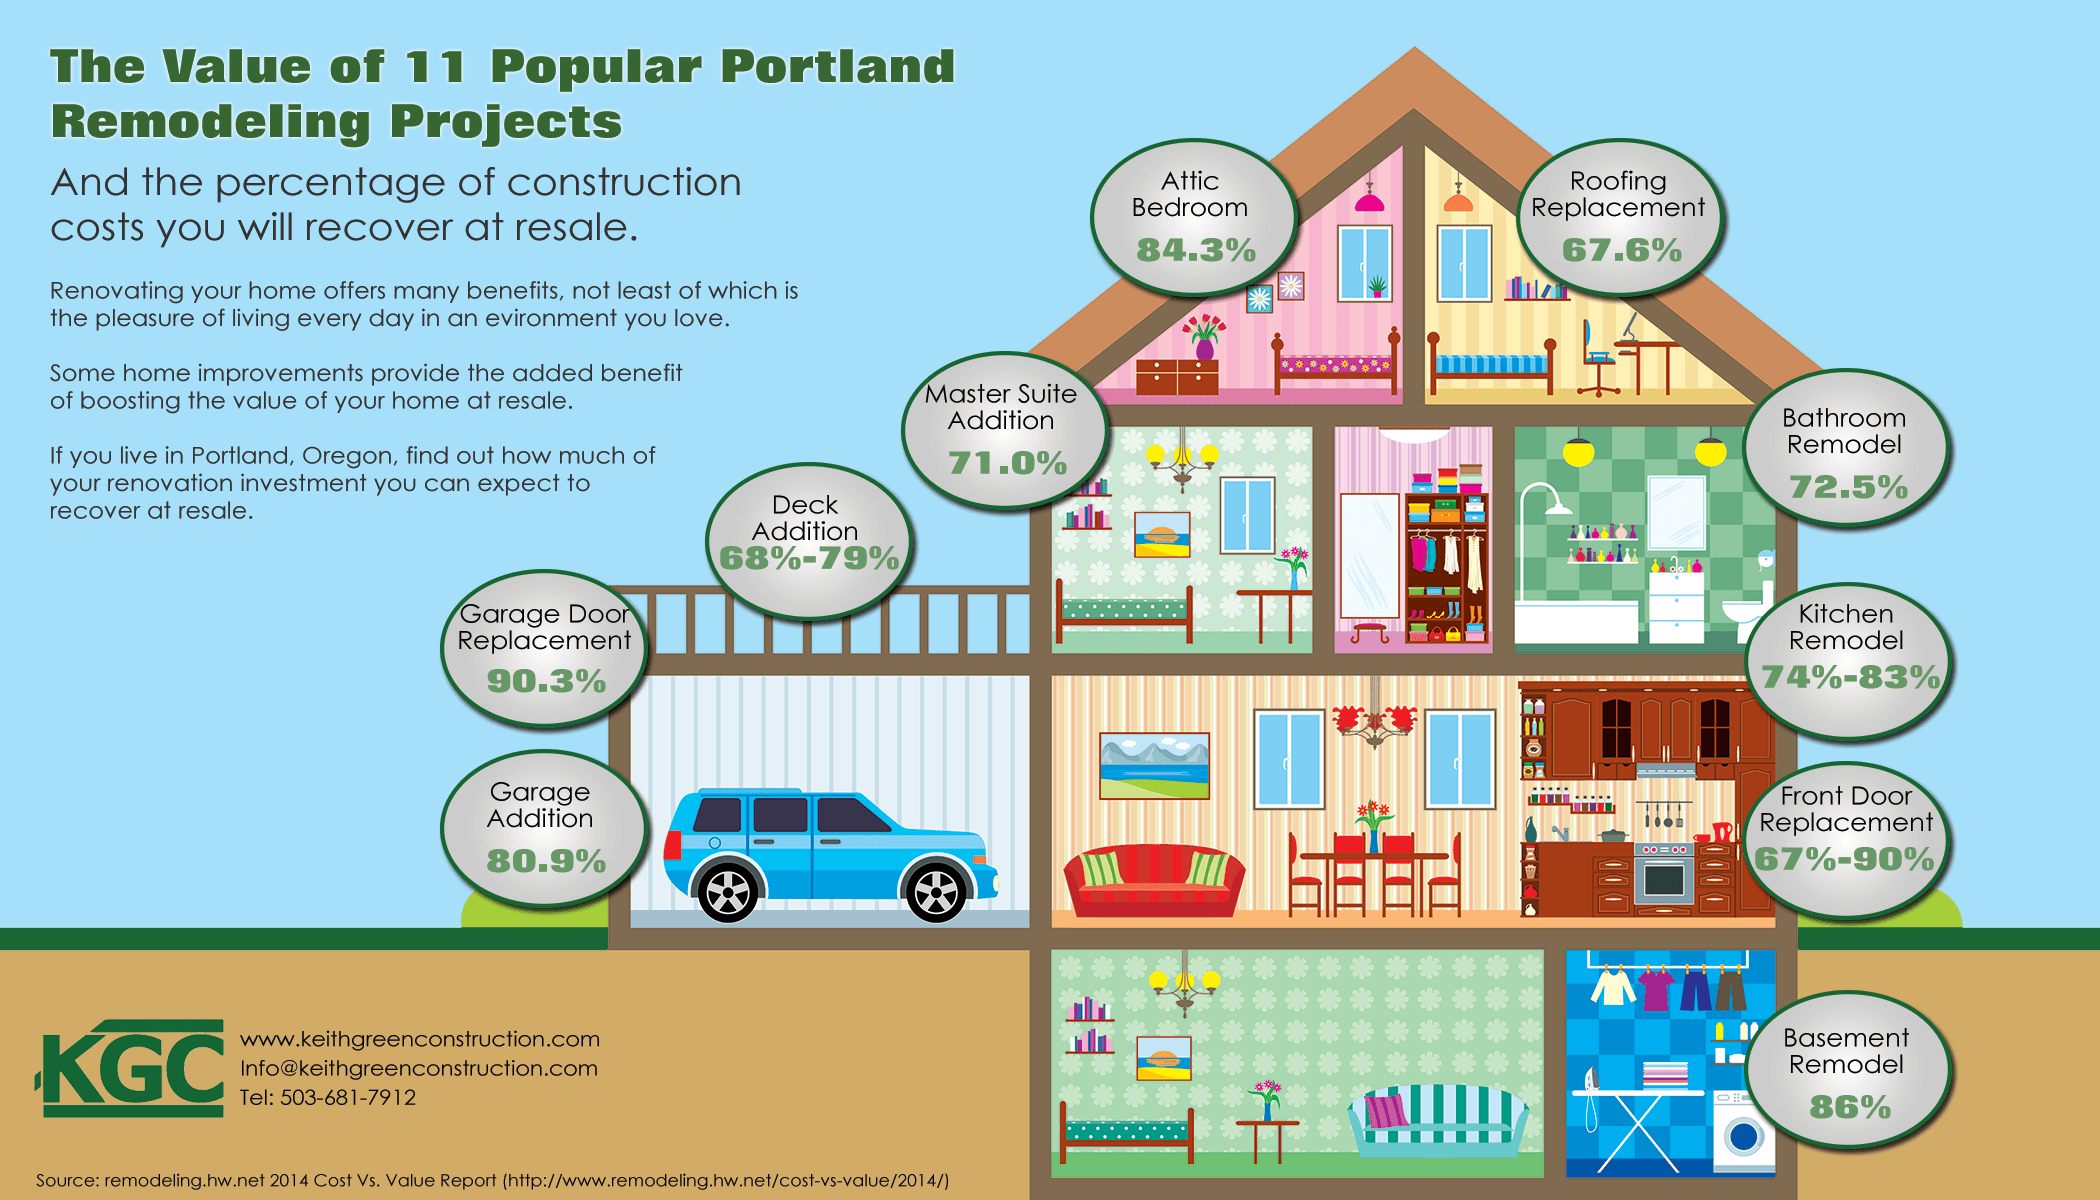 Value of Portland Remodeling Projects